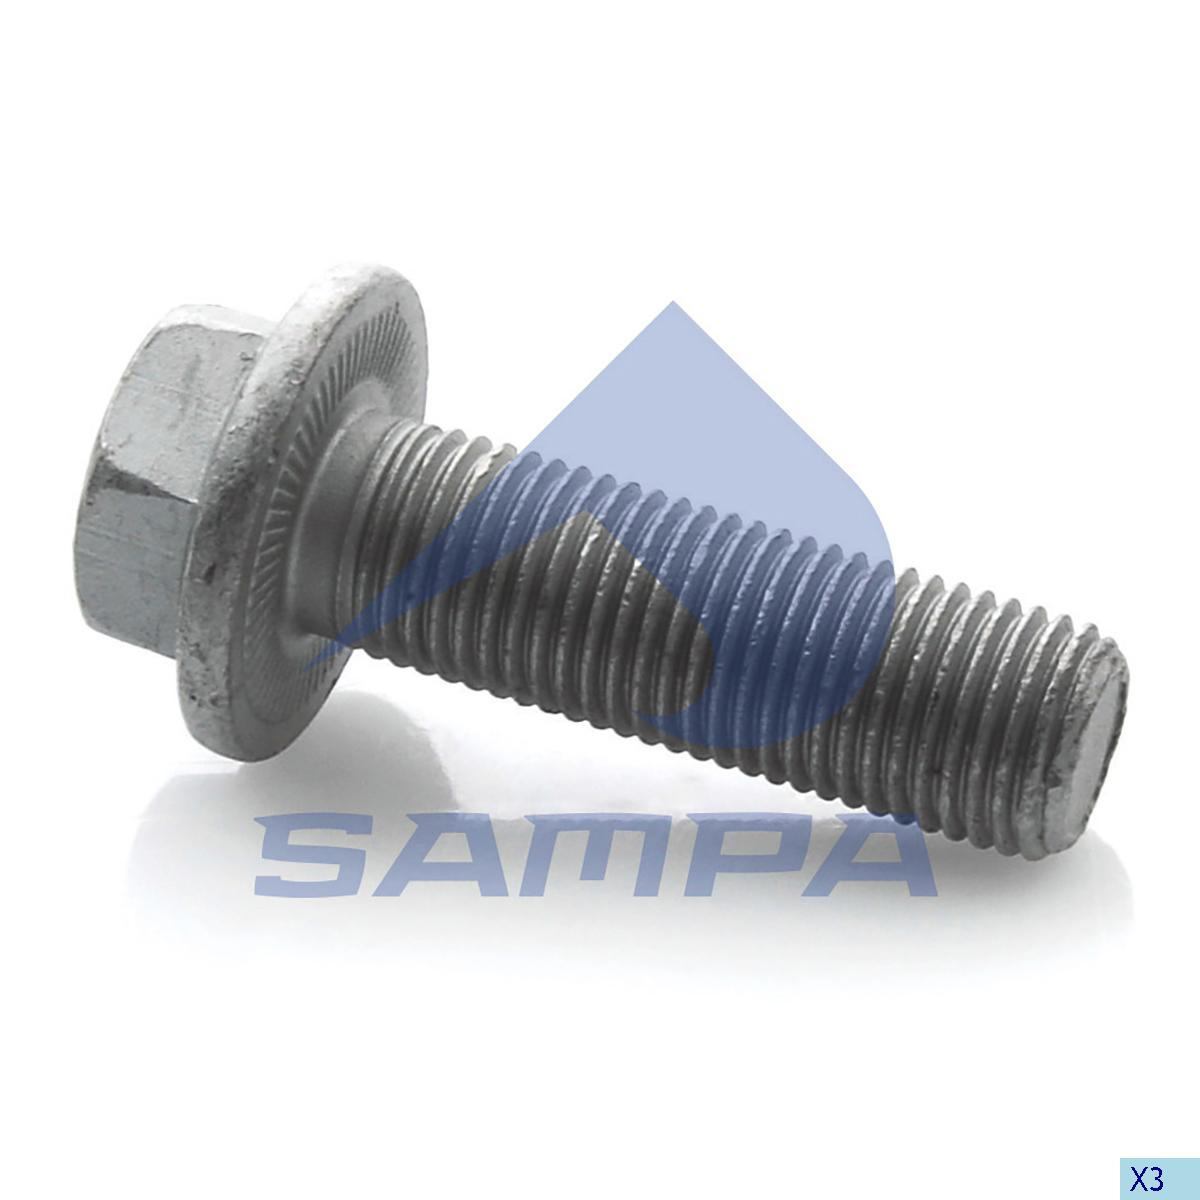 Screw, Traverse, Man, Chassis